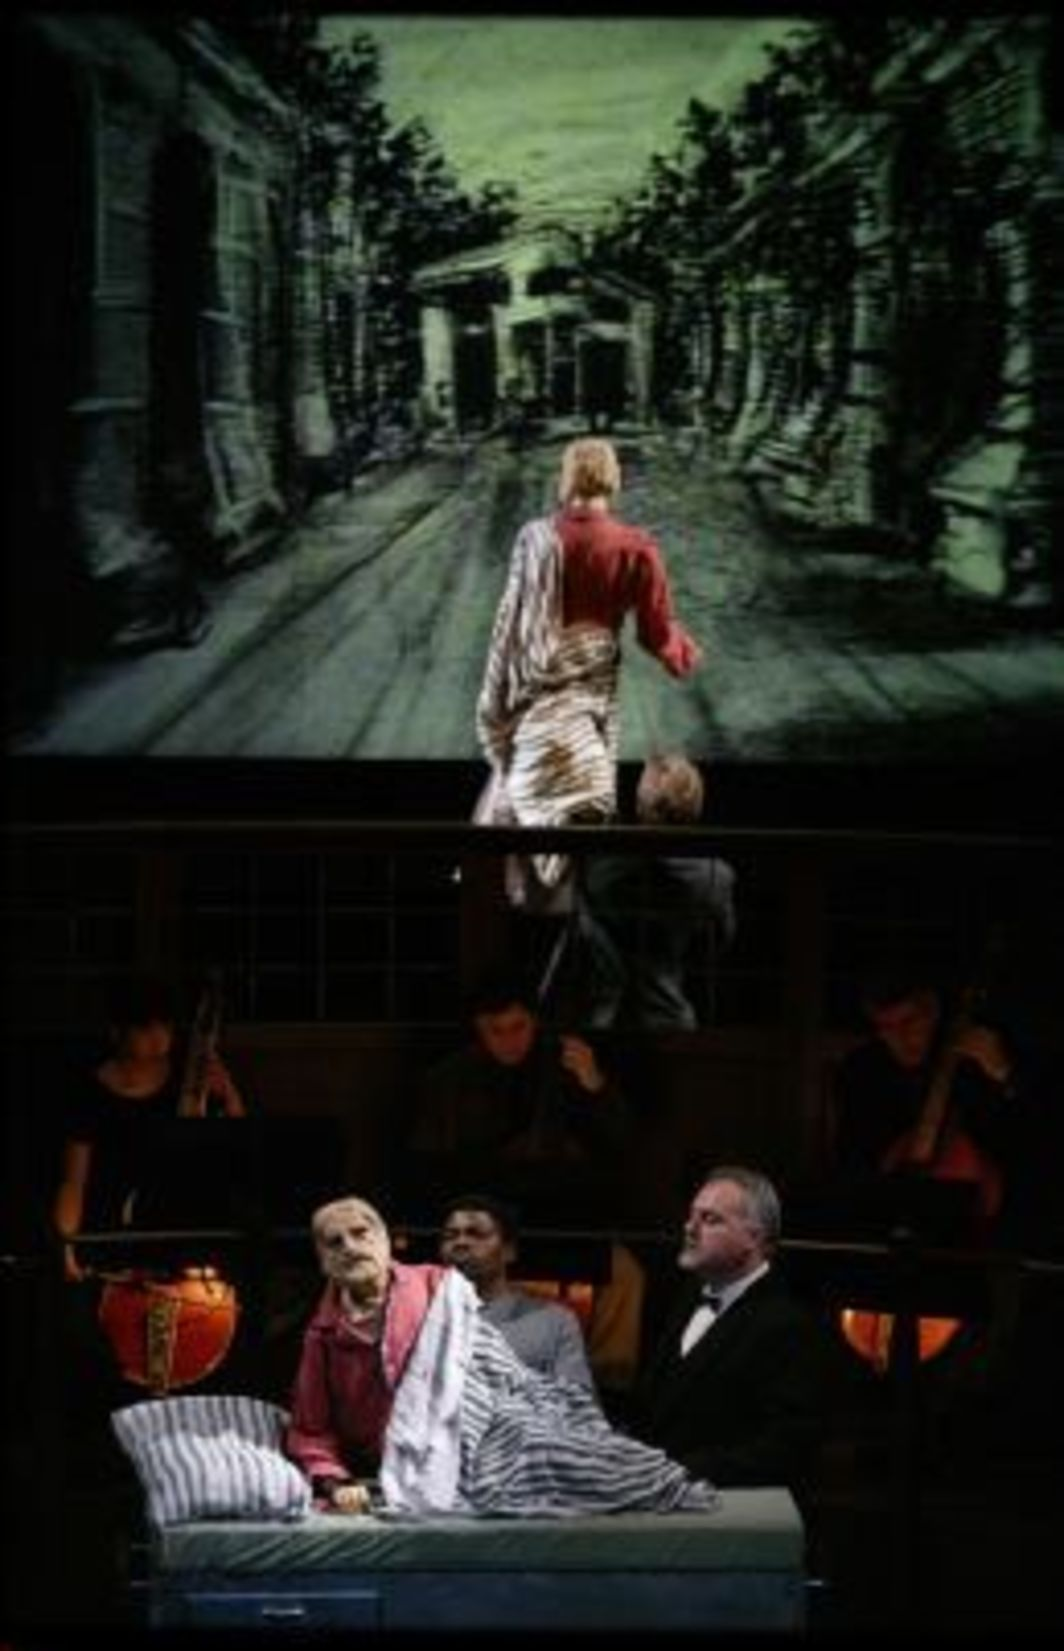 William Kentridge, Il Ritorno d'Ulisse, 1998. Performance view, John Jay College Theater, New York, 2004. Fourie Nyamade (puppeteer) and Furio Zanasi (vocalist). Photo: Johan Jacobs-LaMonnaie.